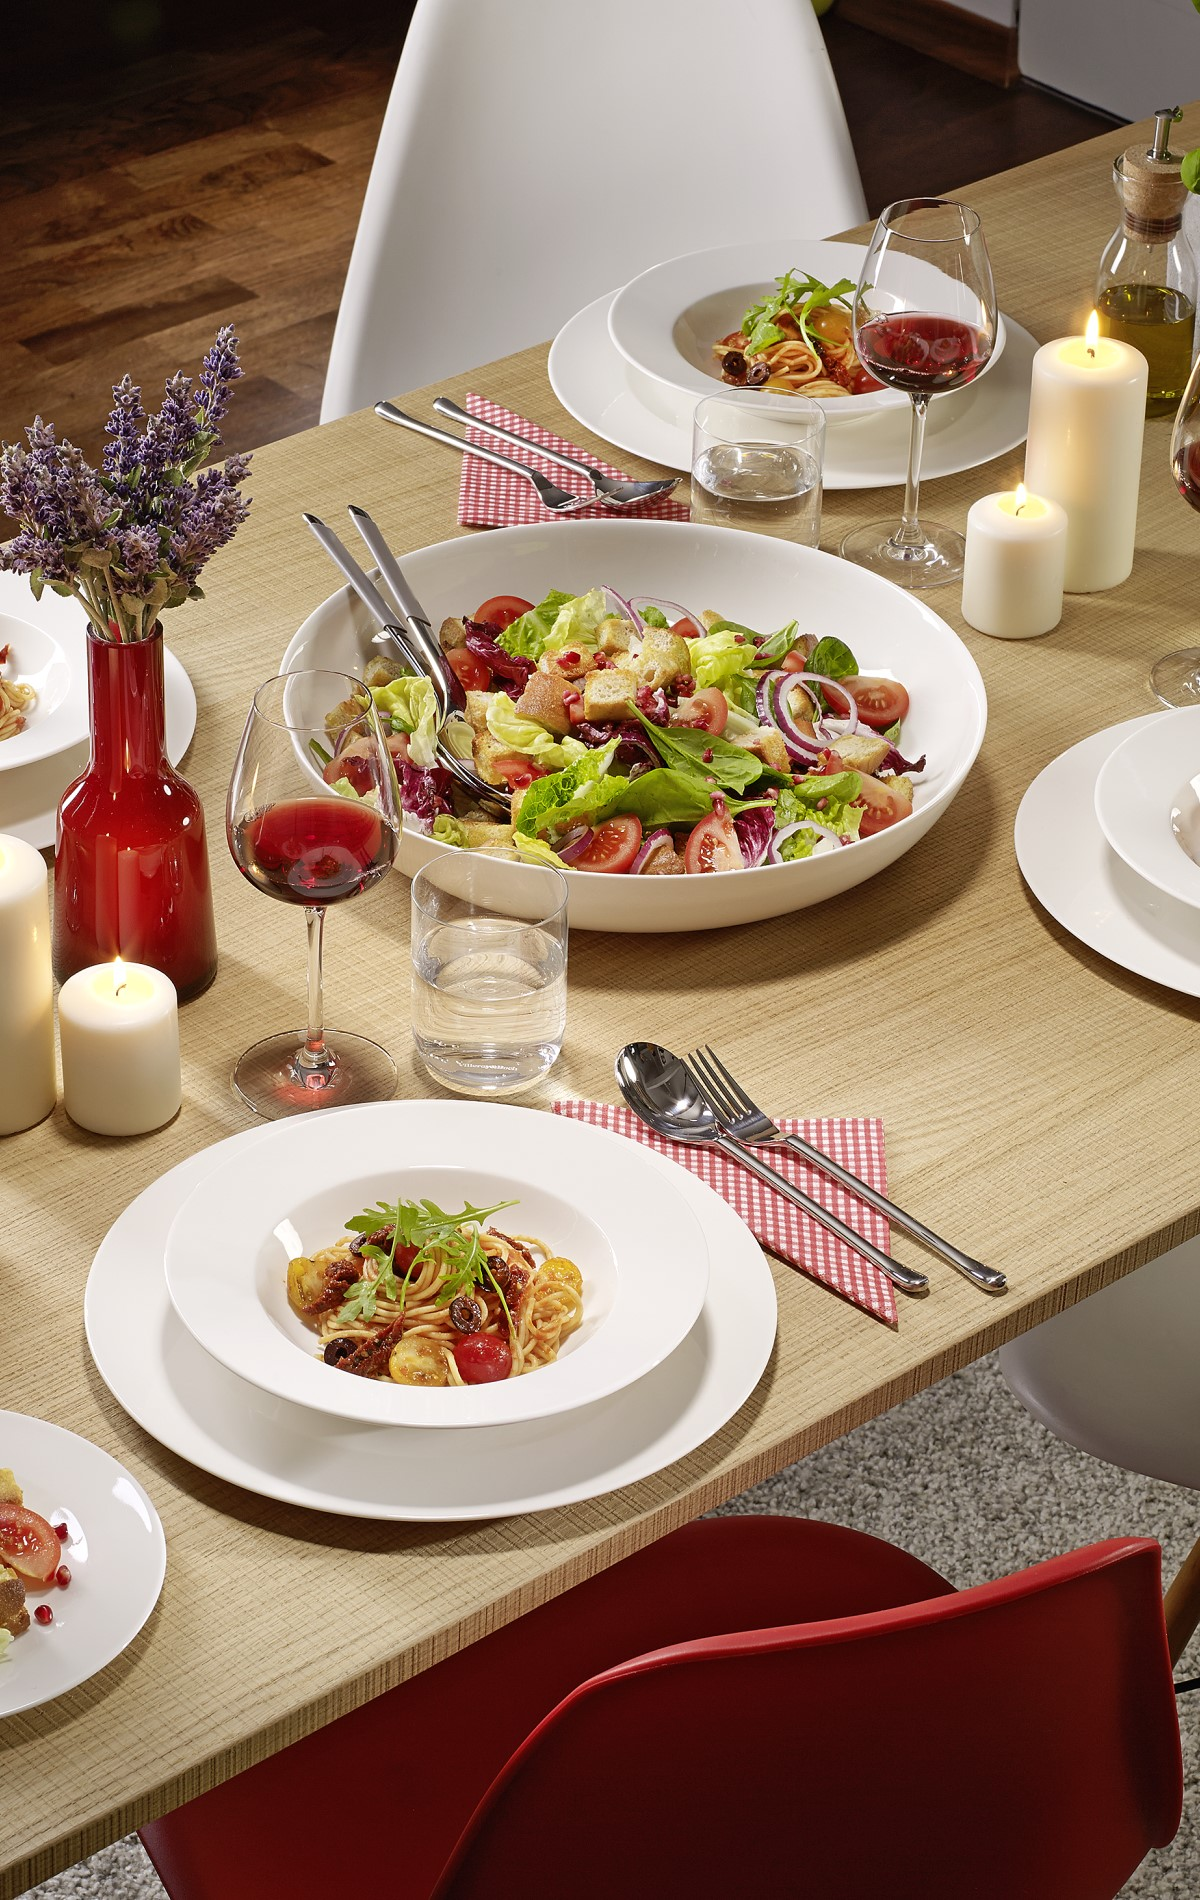 Mariefleur gris collection from Villeroy & Boch